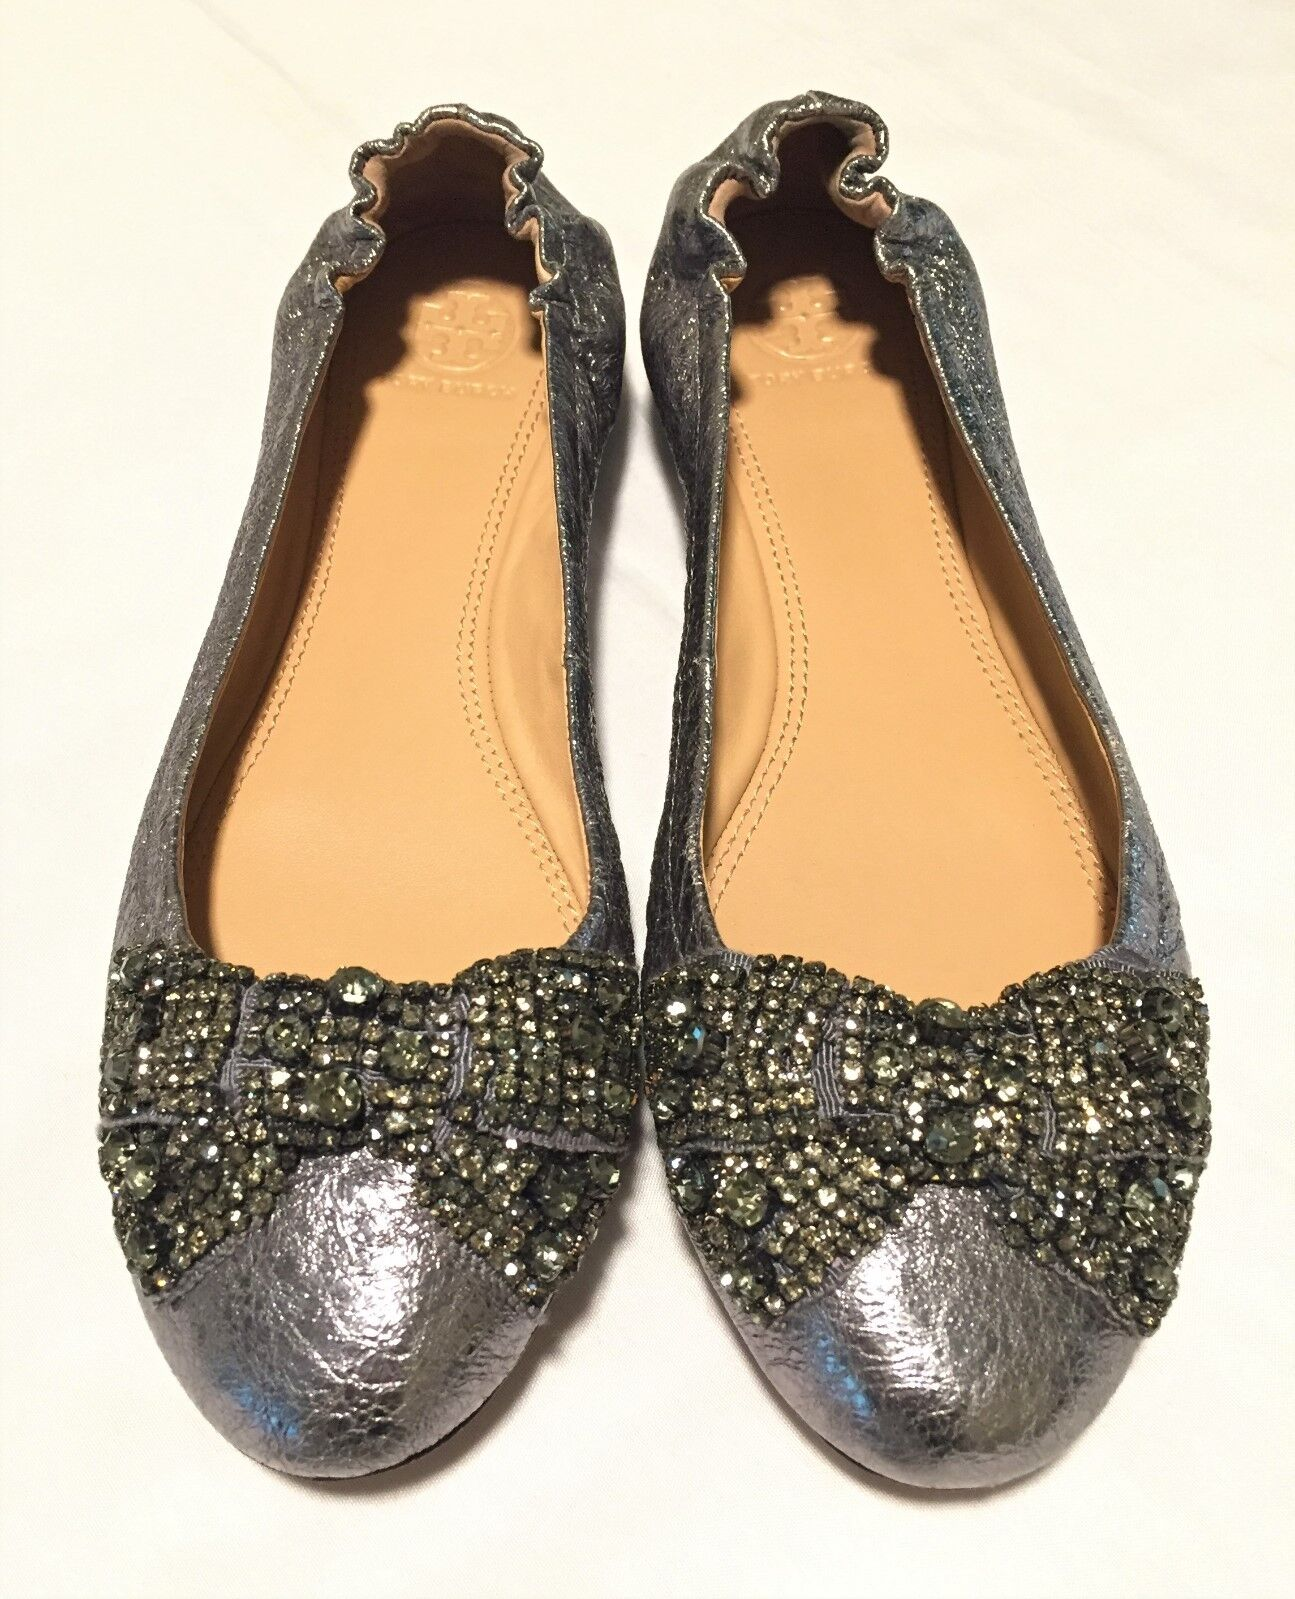 Tory Burch Silver Crystal Jeweled Bow All Leather Women Ballet Flat shoes Sz 8.5M